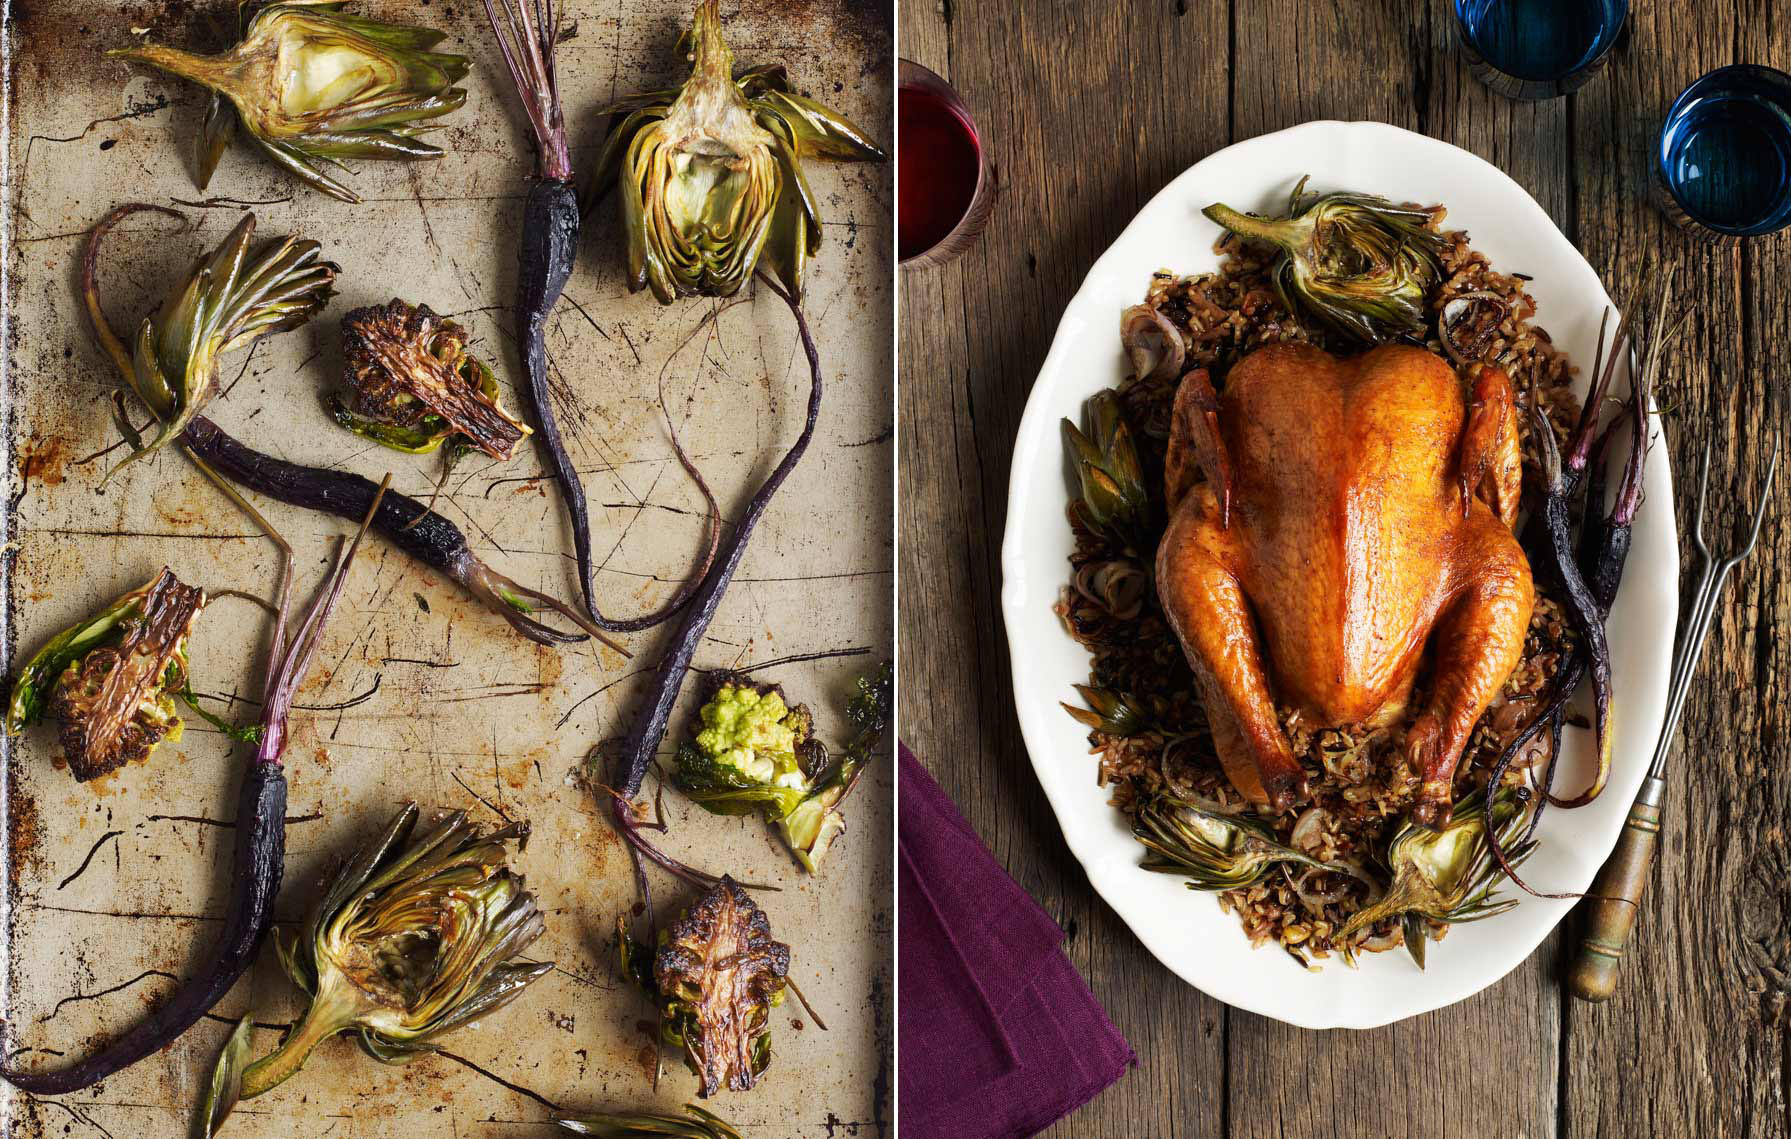 ROASTED-VEGGIES-AND-BIRD.jpg